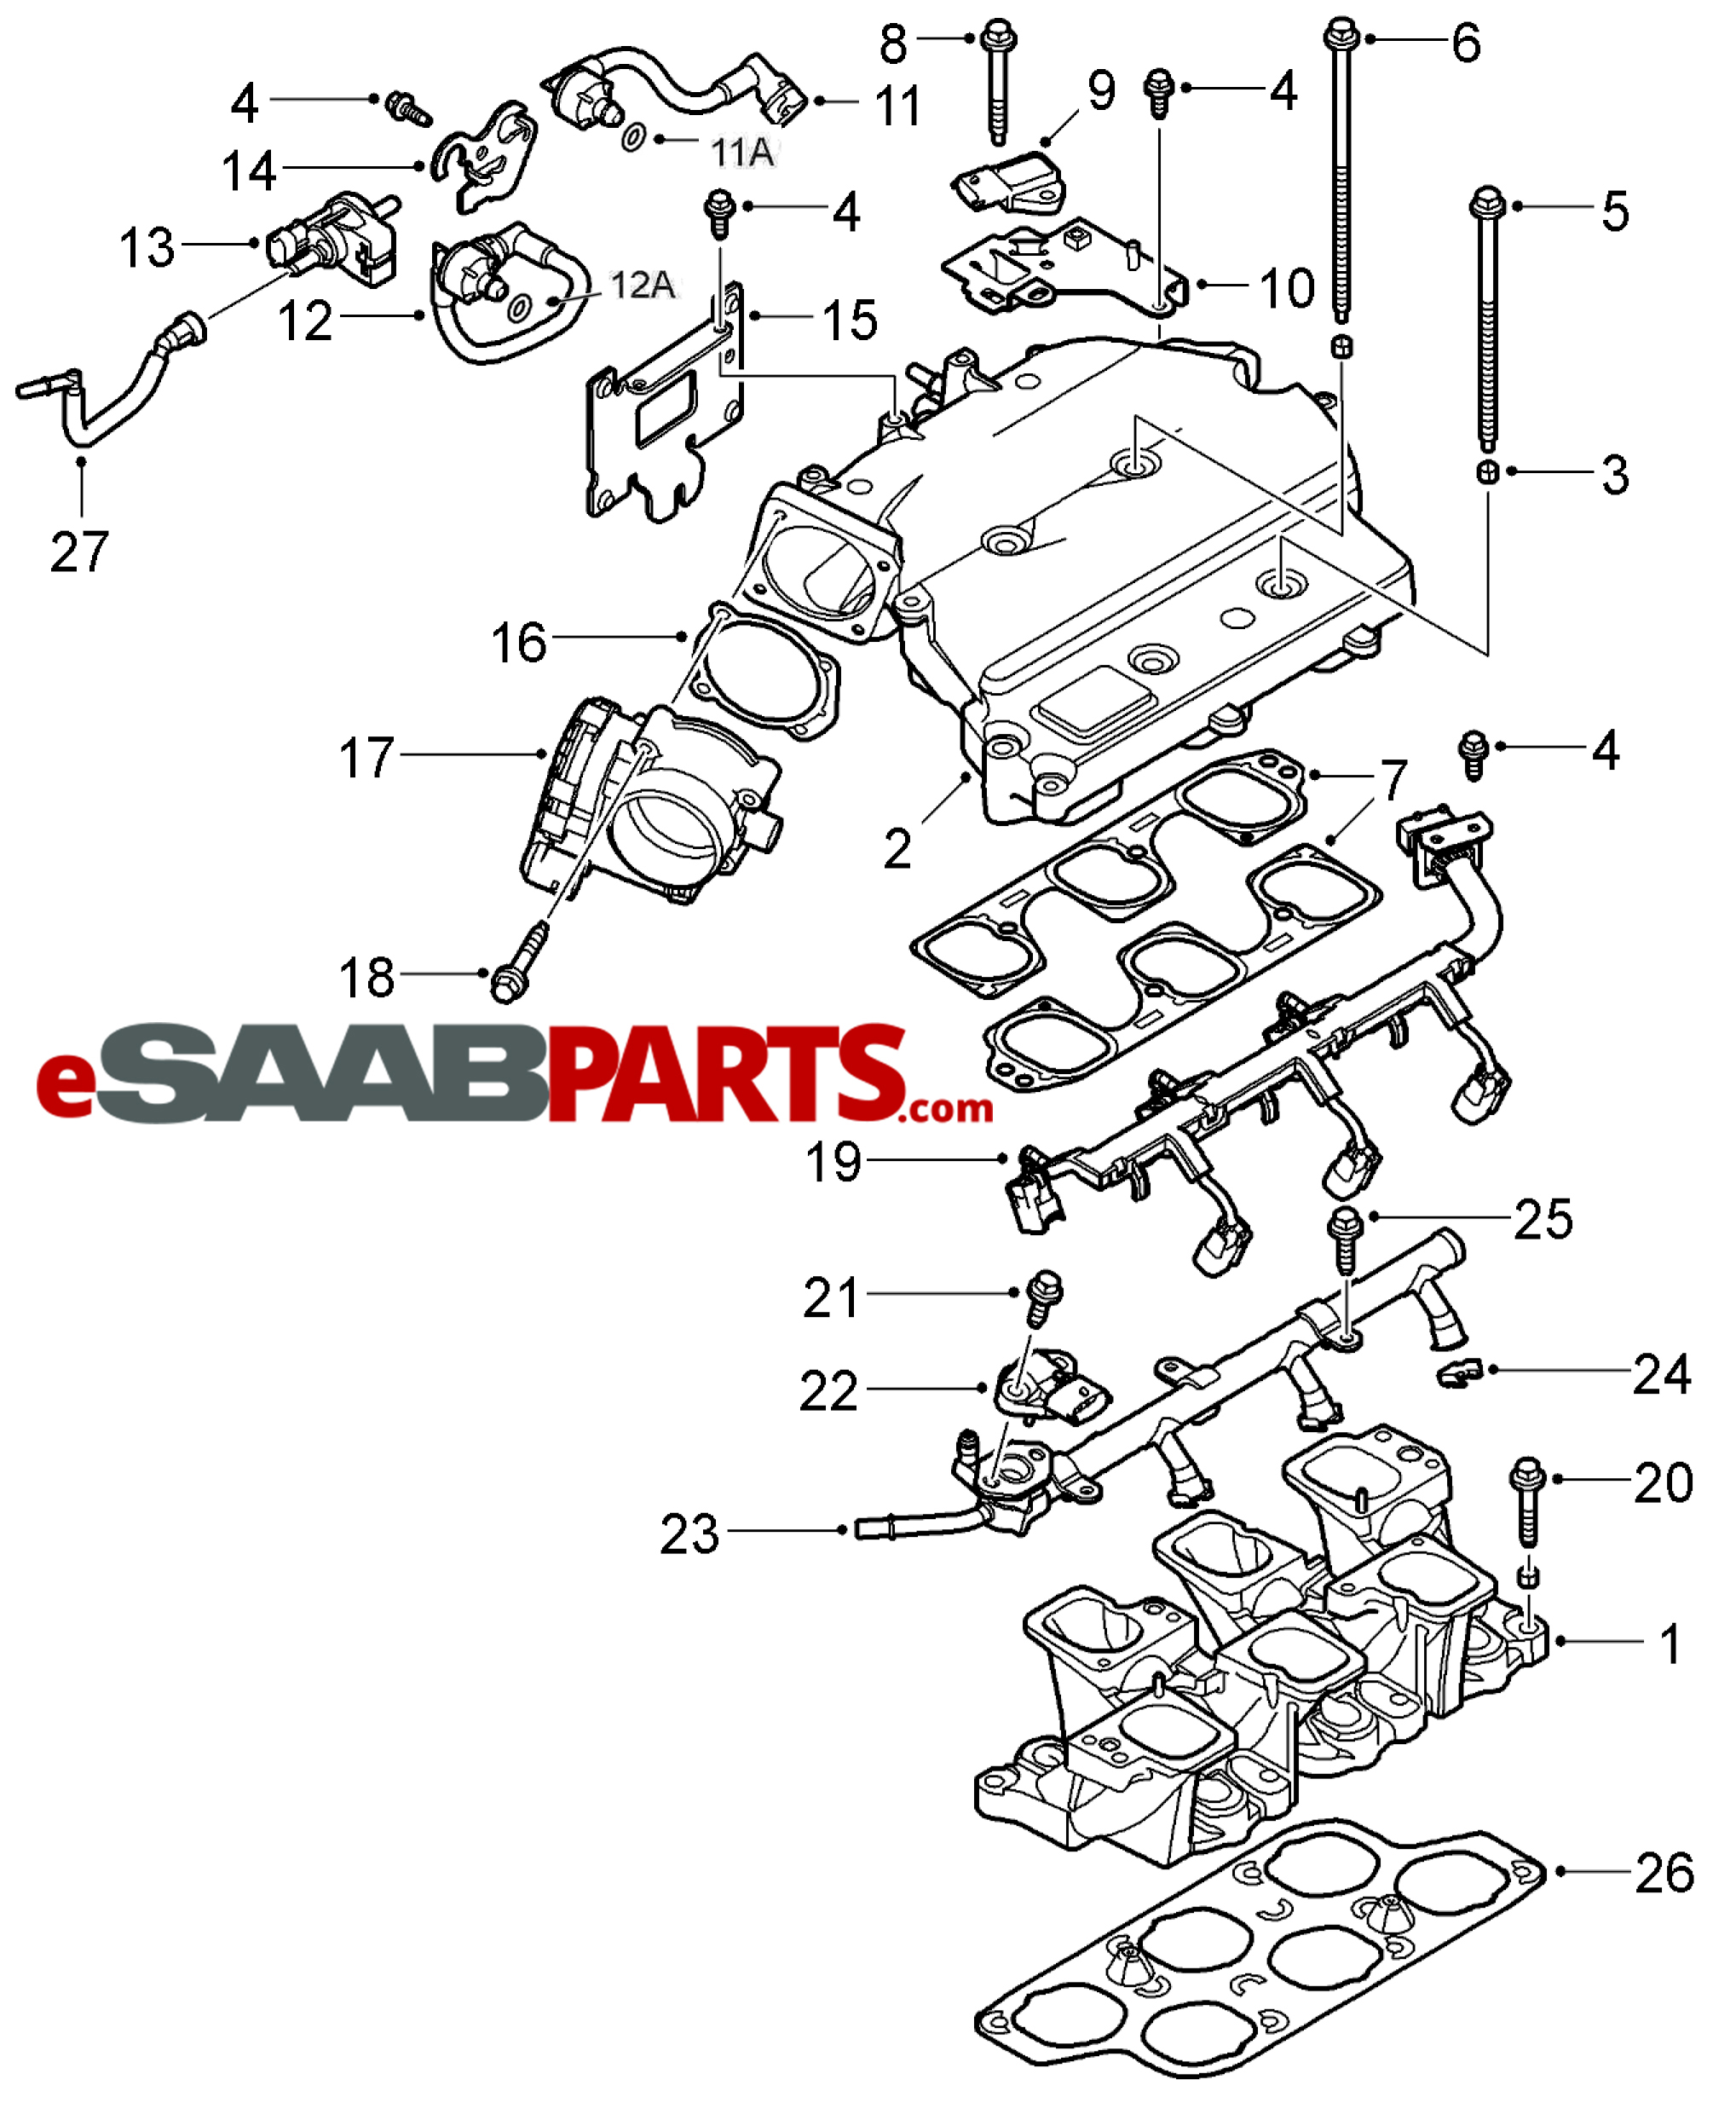 2003 saab engine wiring saab engine diagrams saab 9 5 intake manifold diagram imageresizertool com #9